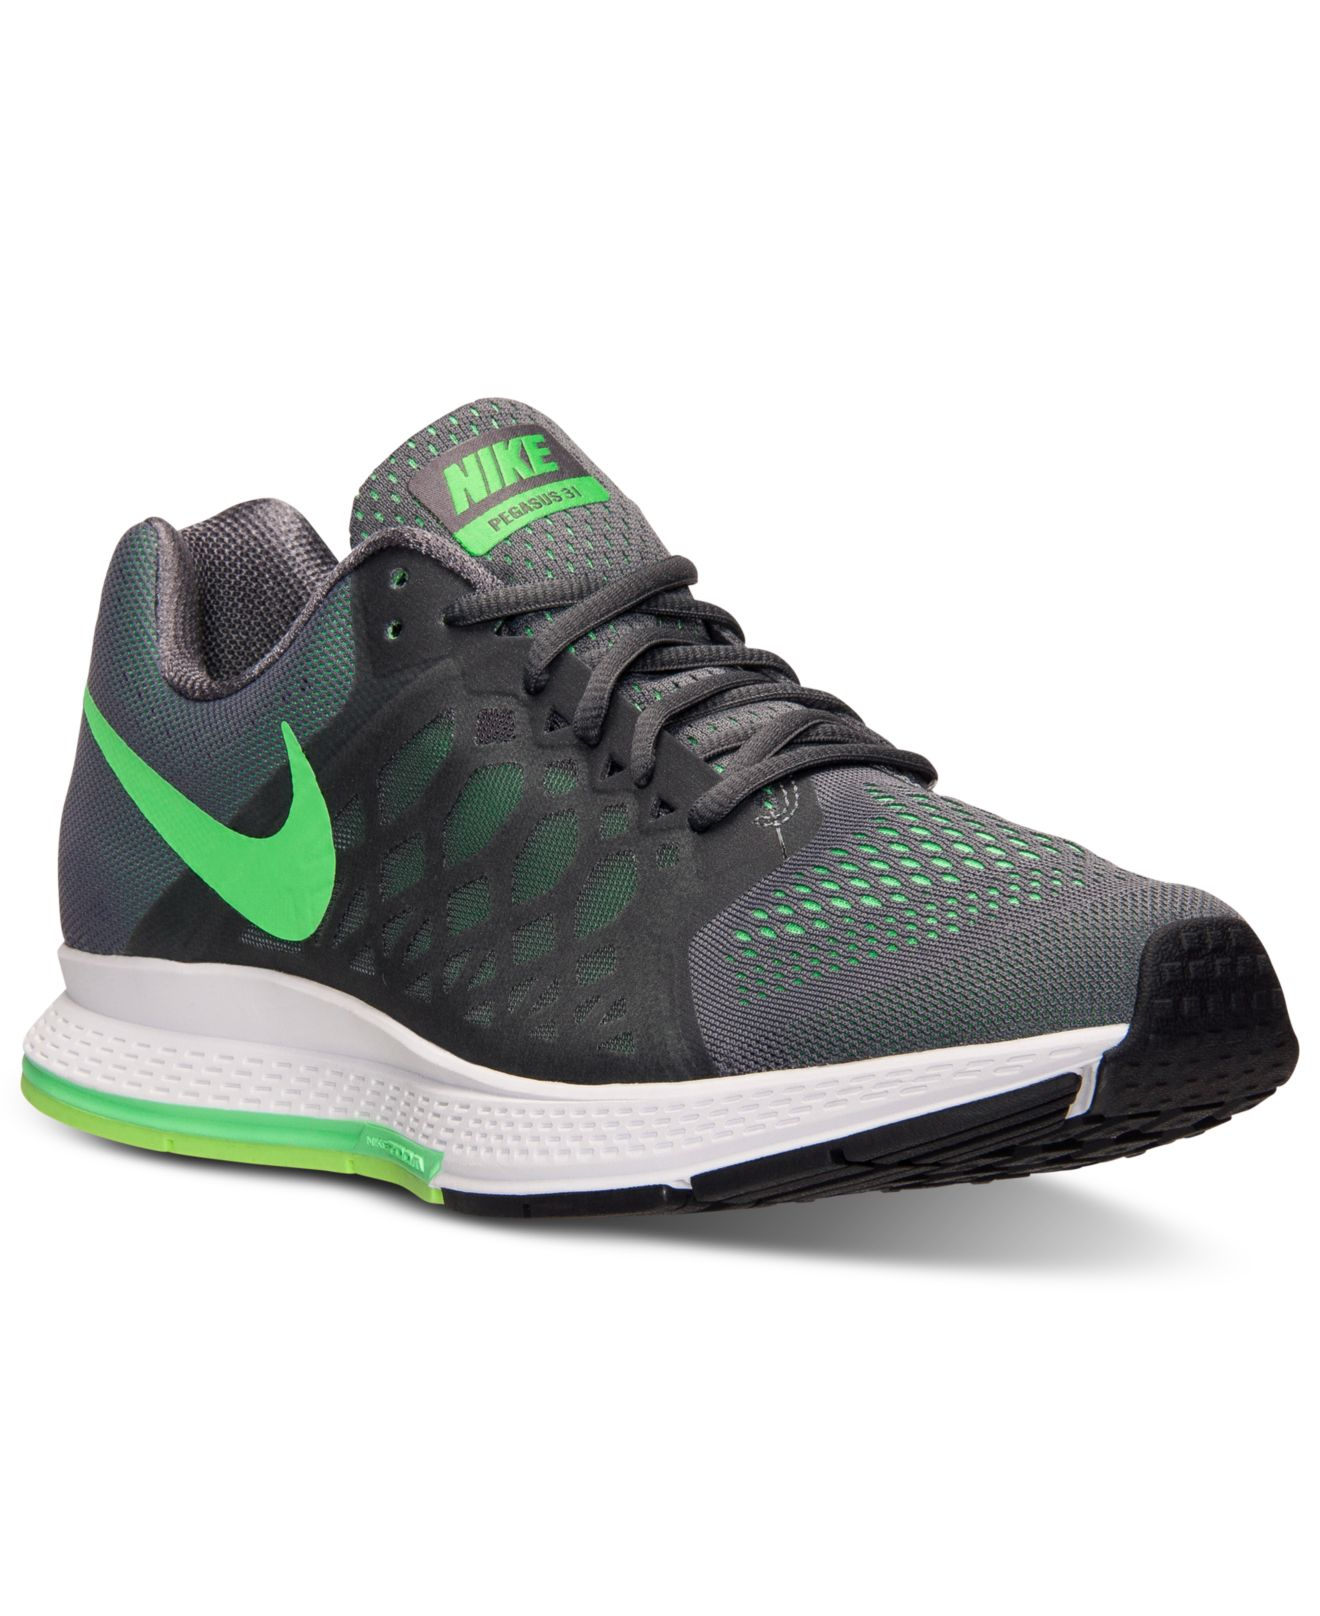 nike men 39 s zoom pegasus 31 running sneakers from finish. Black Bedroom Furniture Sets. Home Design Ideas